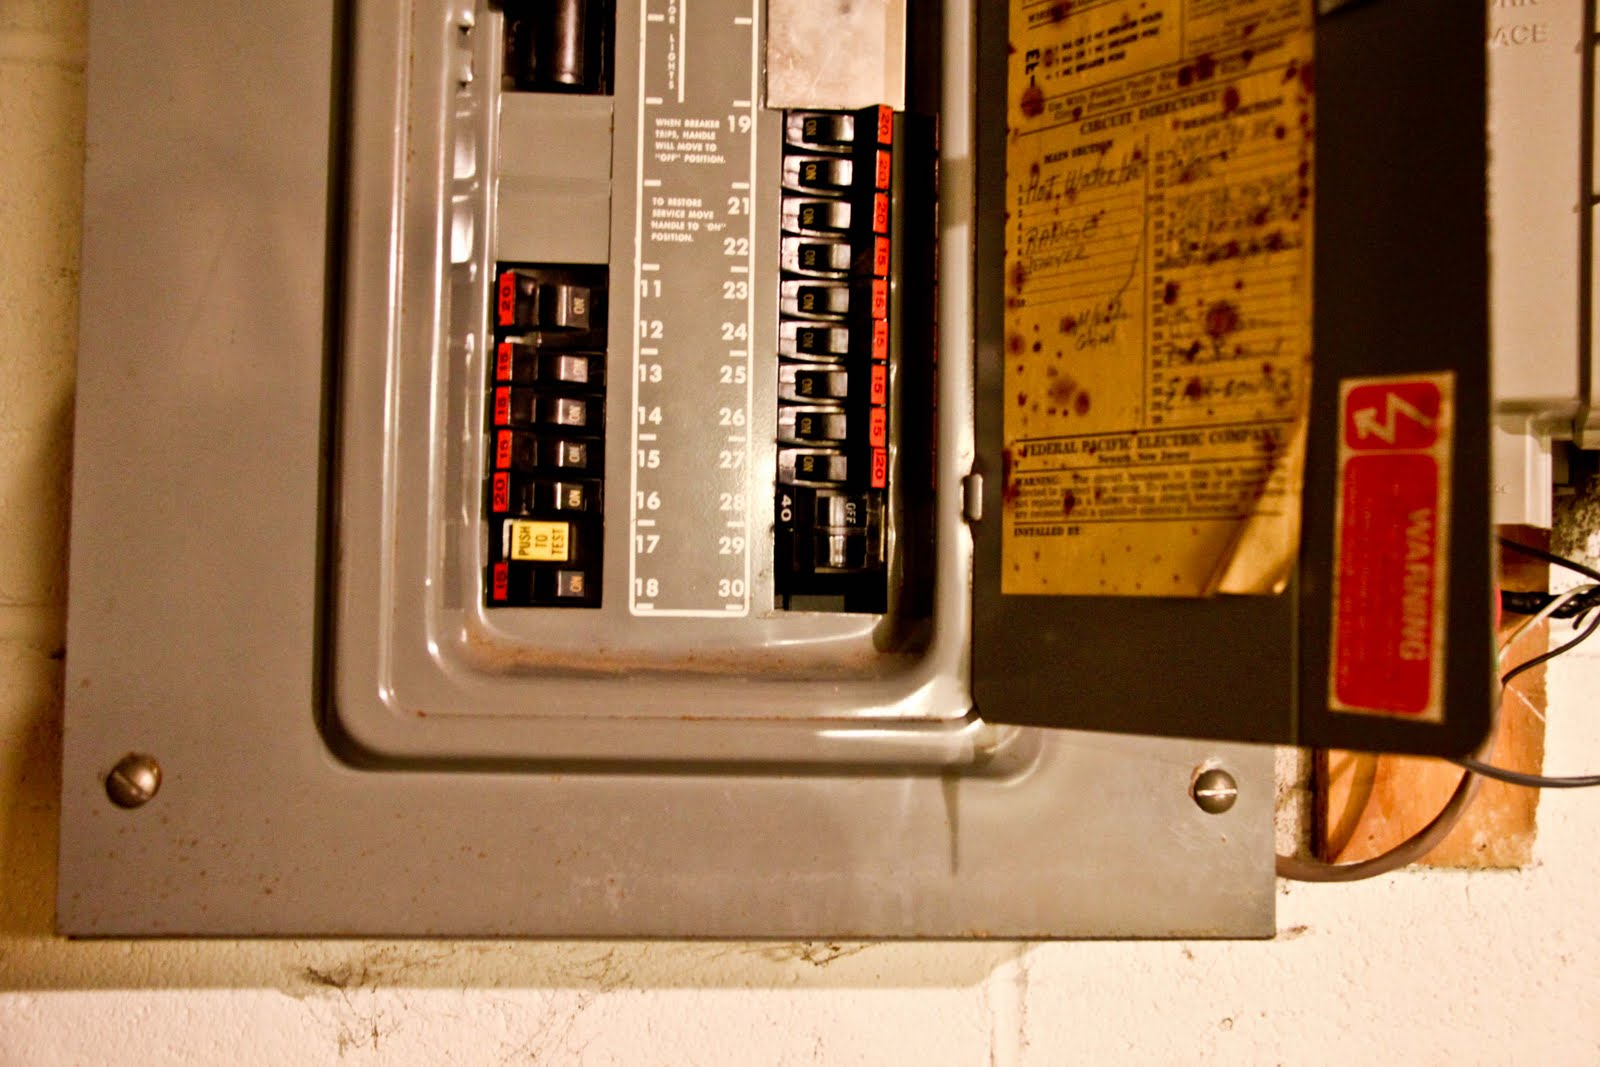 IMG_4614 replacing fuse on central ac unit work space how to reset fuse box in house at gsmx.co